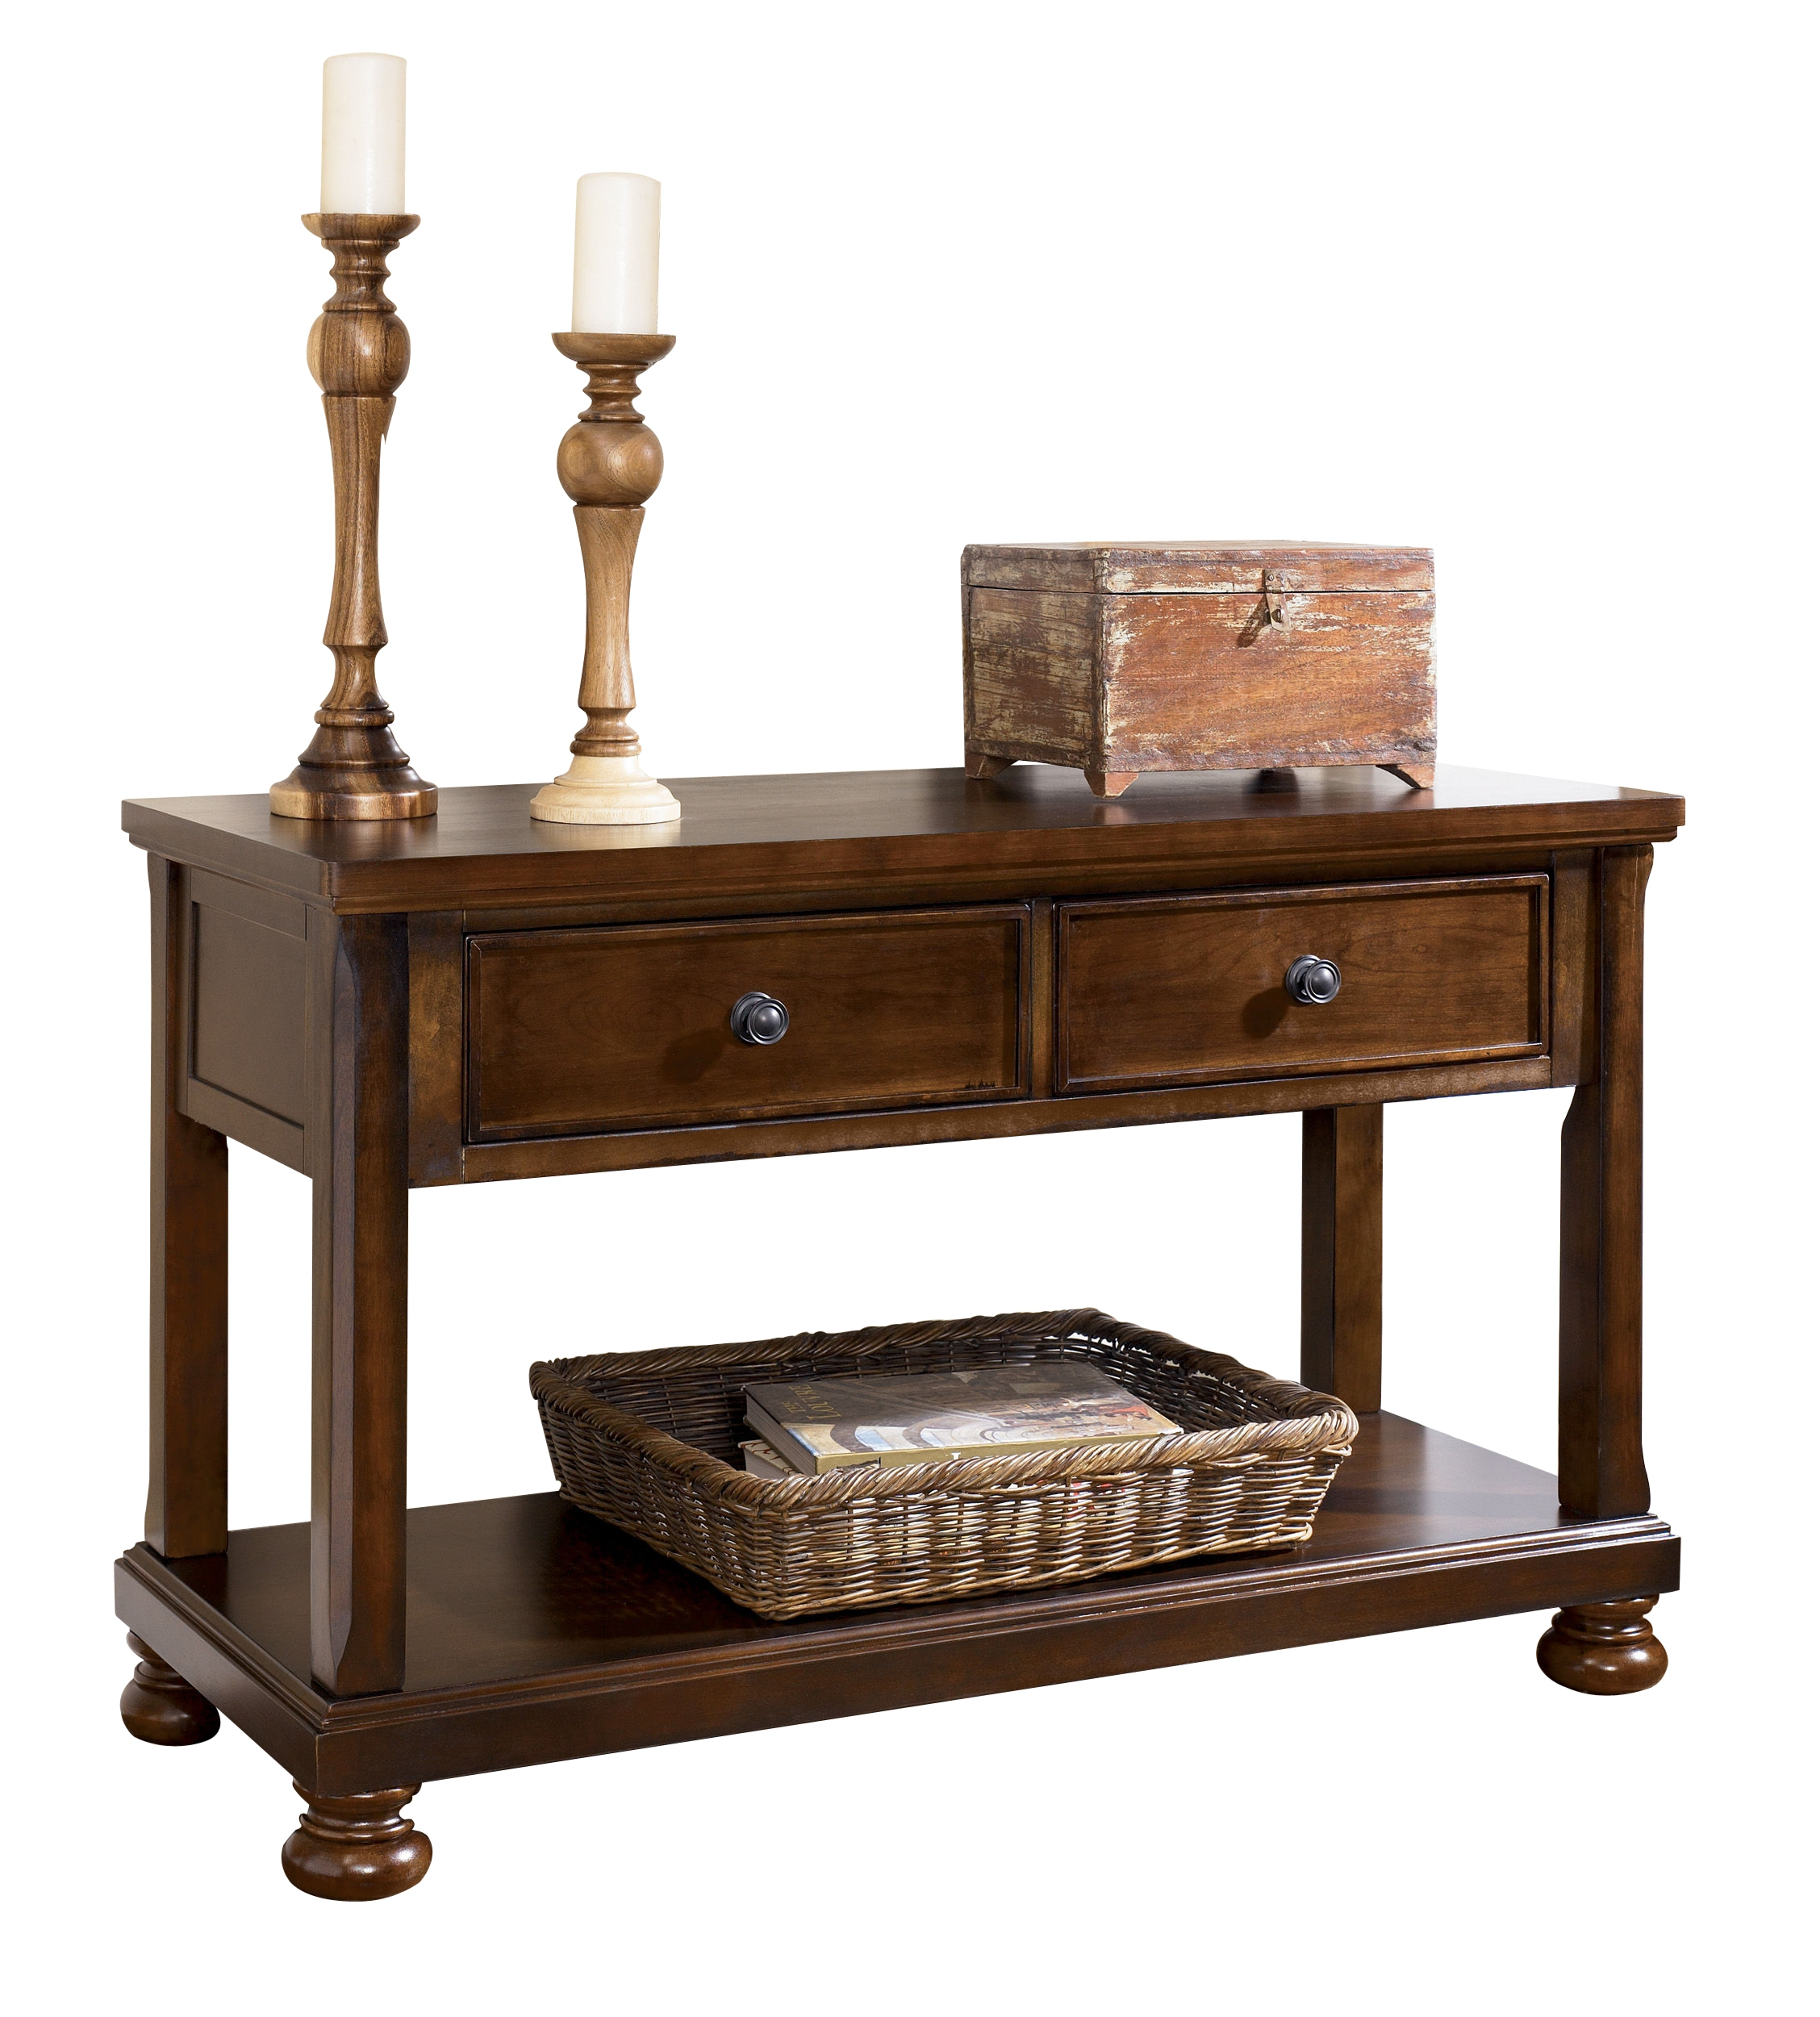 Ashley furniture porter brown sofa console table the classy home click to enlarge geotapseo Image collections